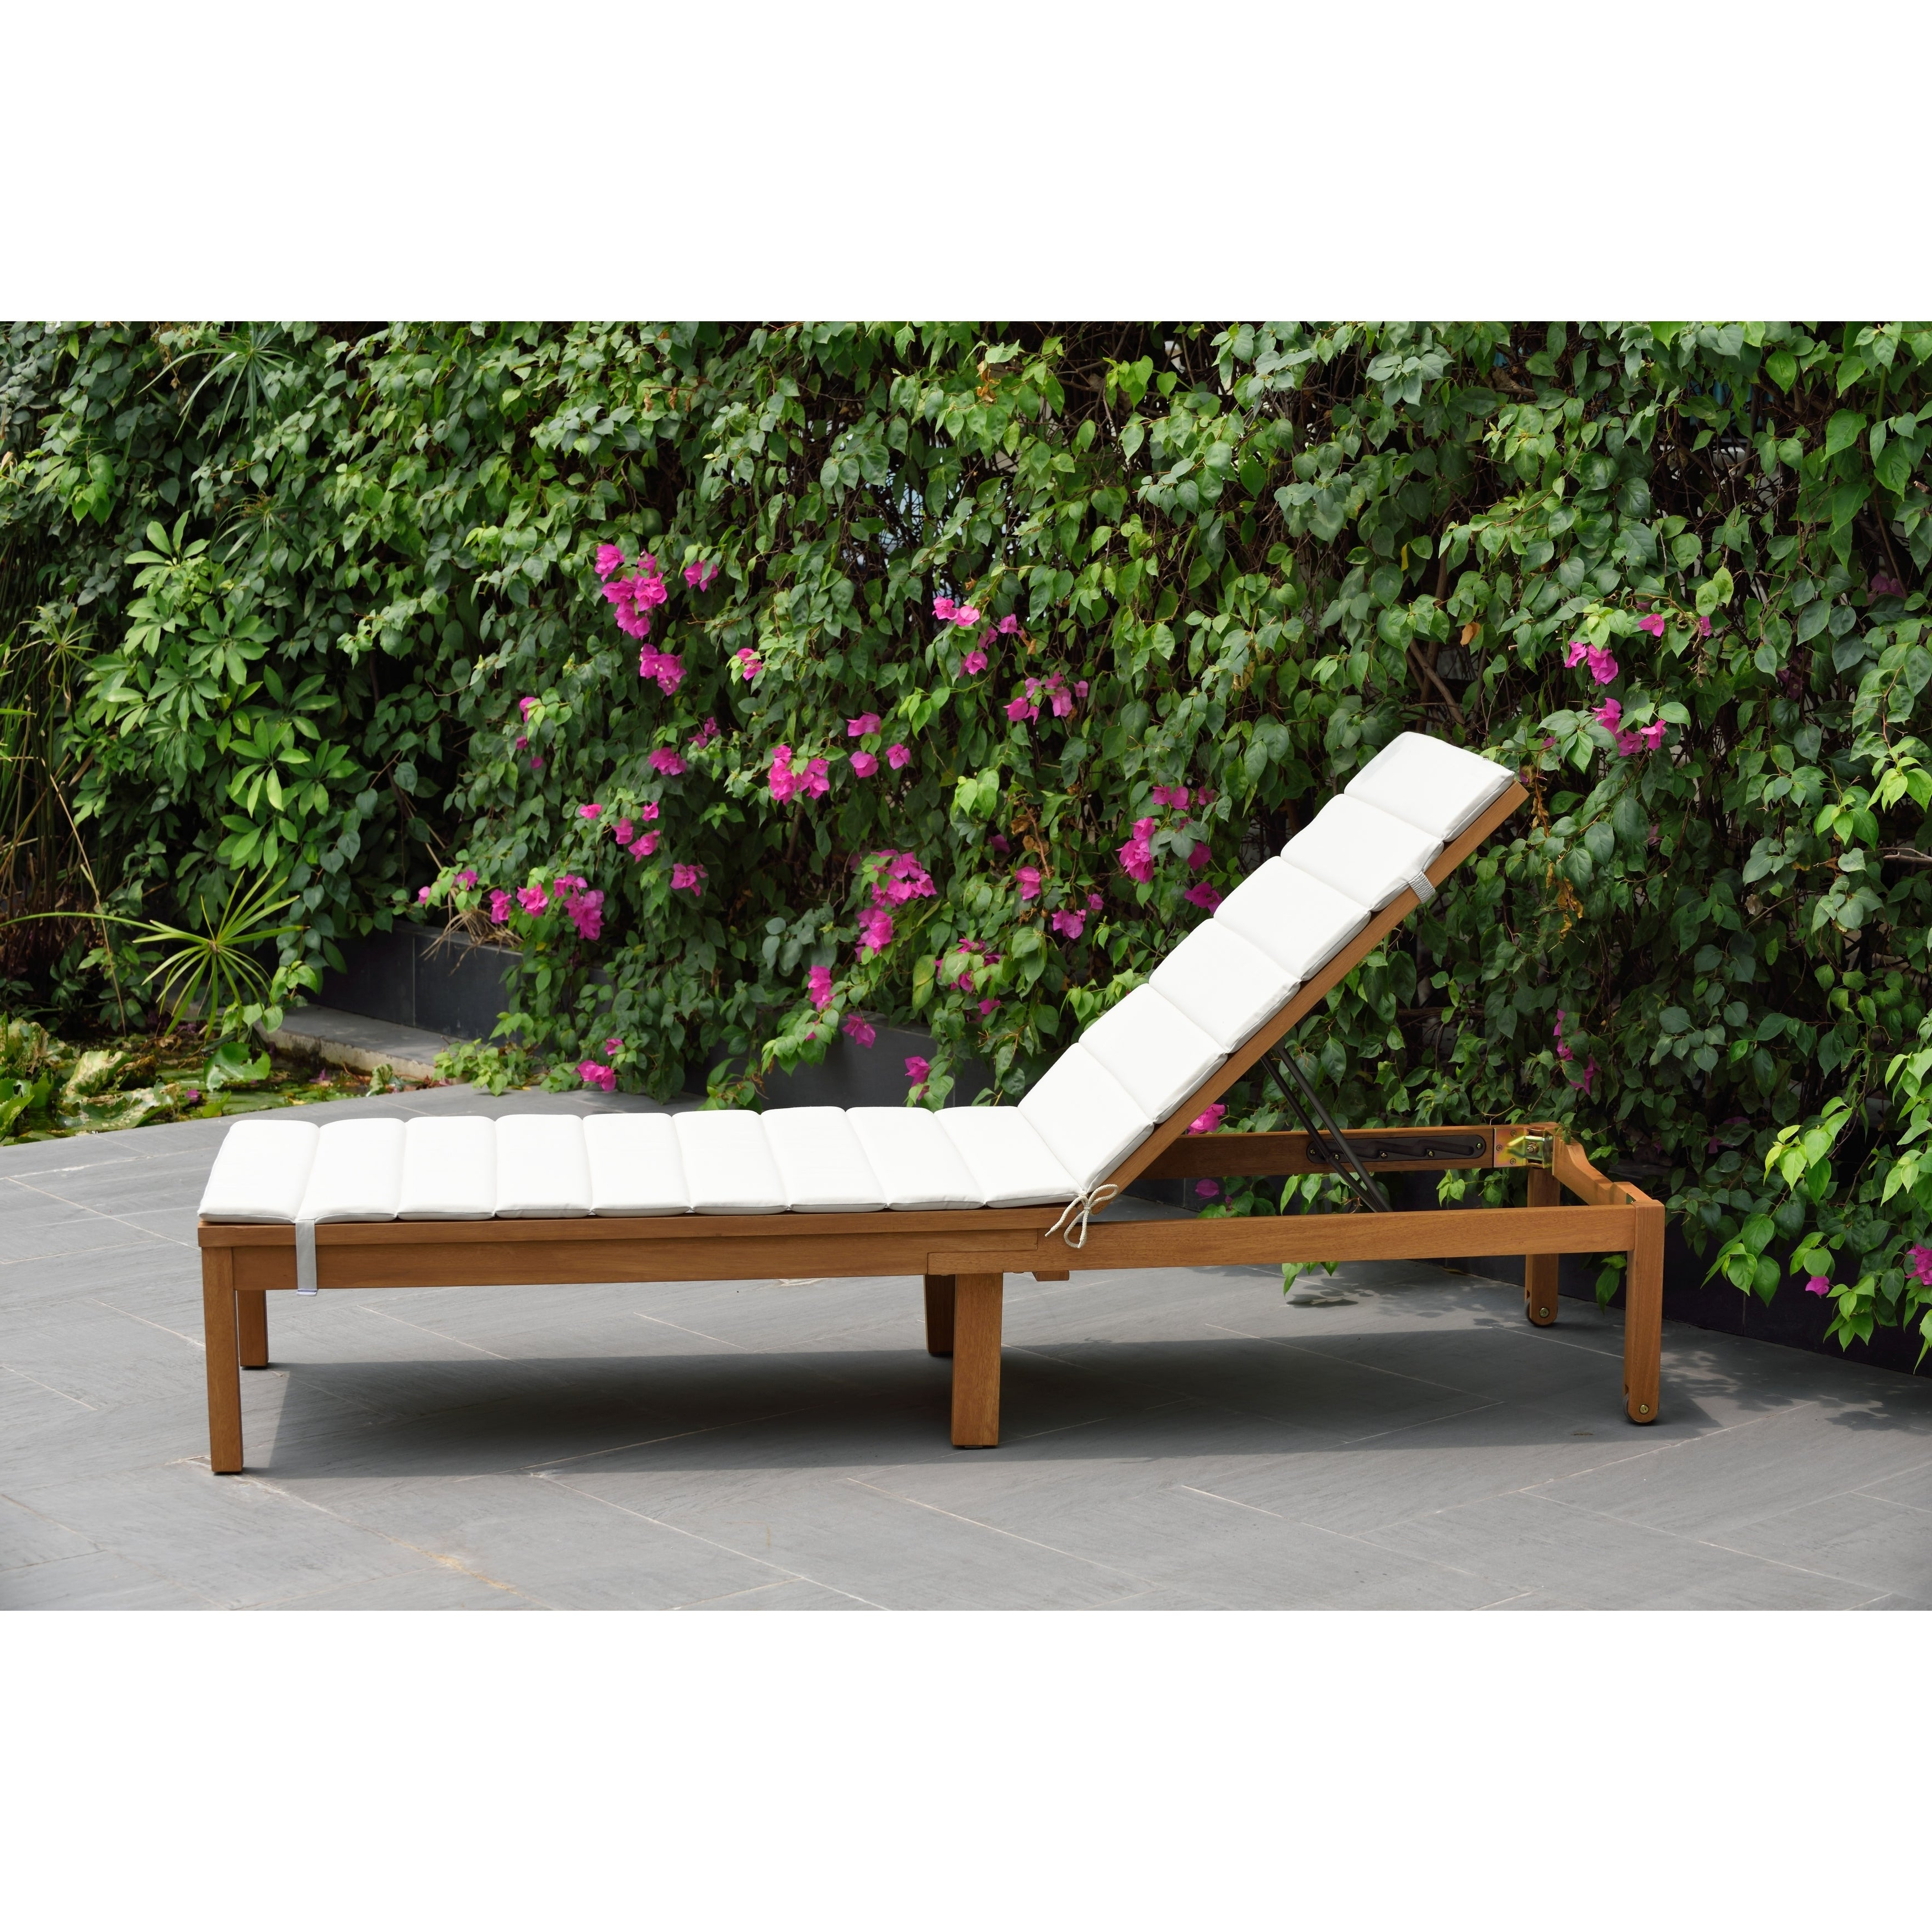 Outdoor Sling Eucalyptus Chaise Loungers With Regard To Widely Used Amazonia Katia Eucalyptus/teak Finish Outdoor Chaise Lounger With Grey  Cushion (View 17 of 25)